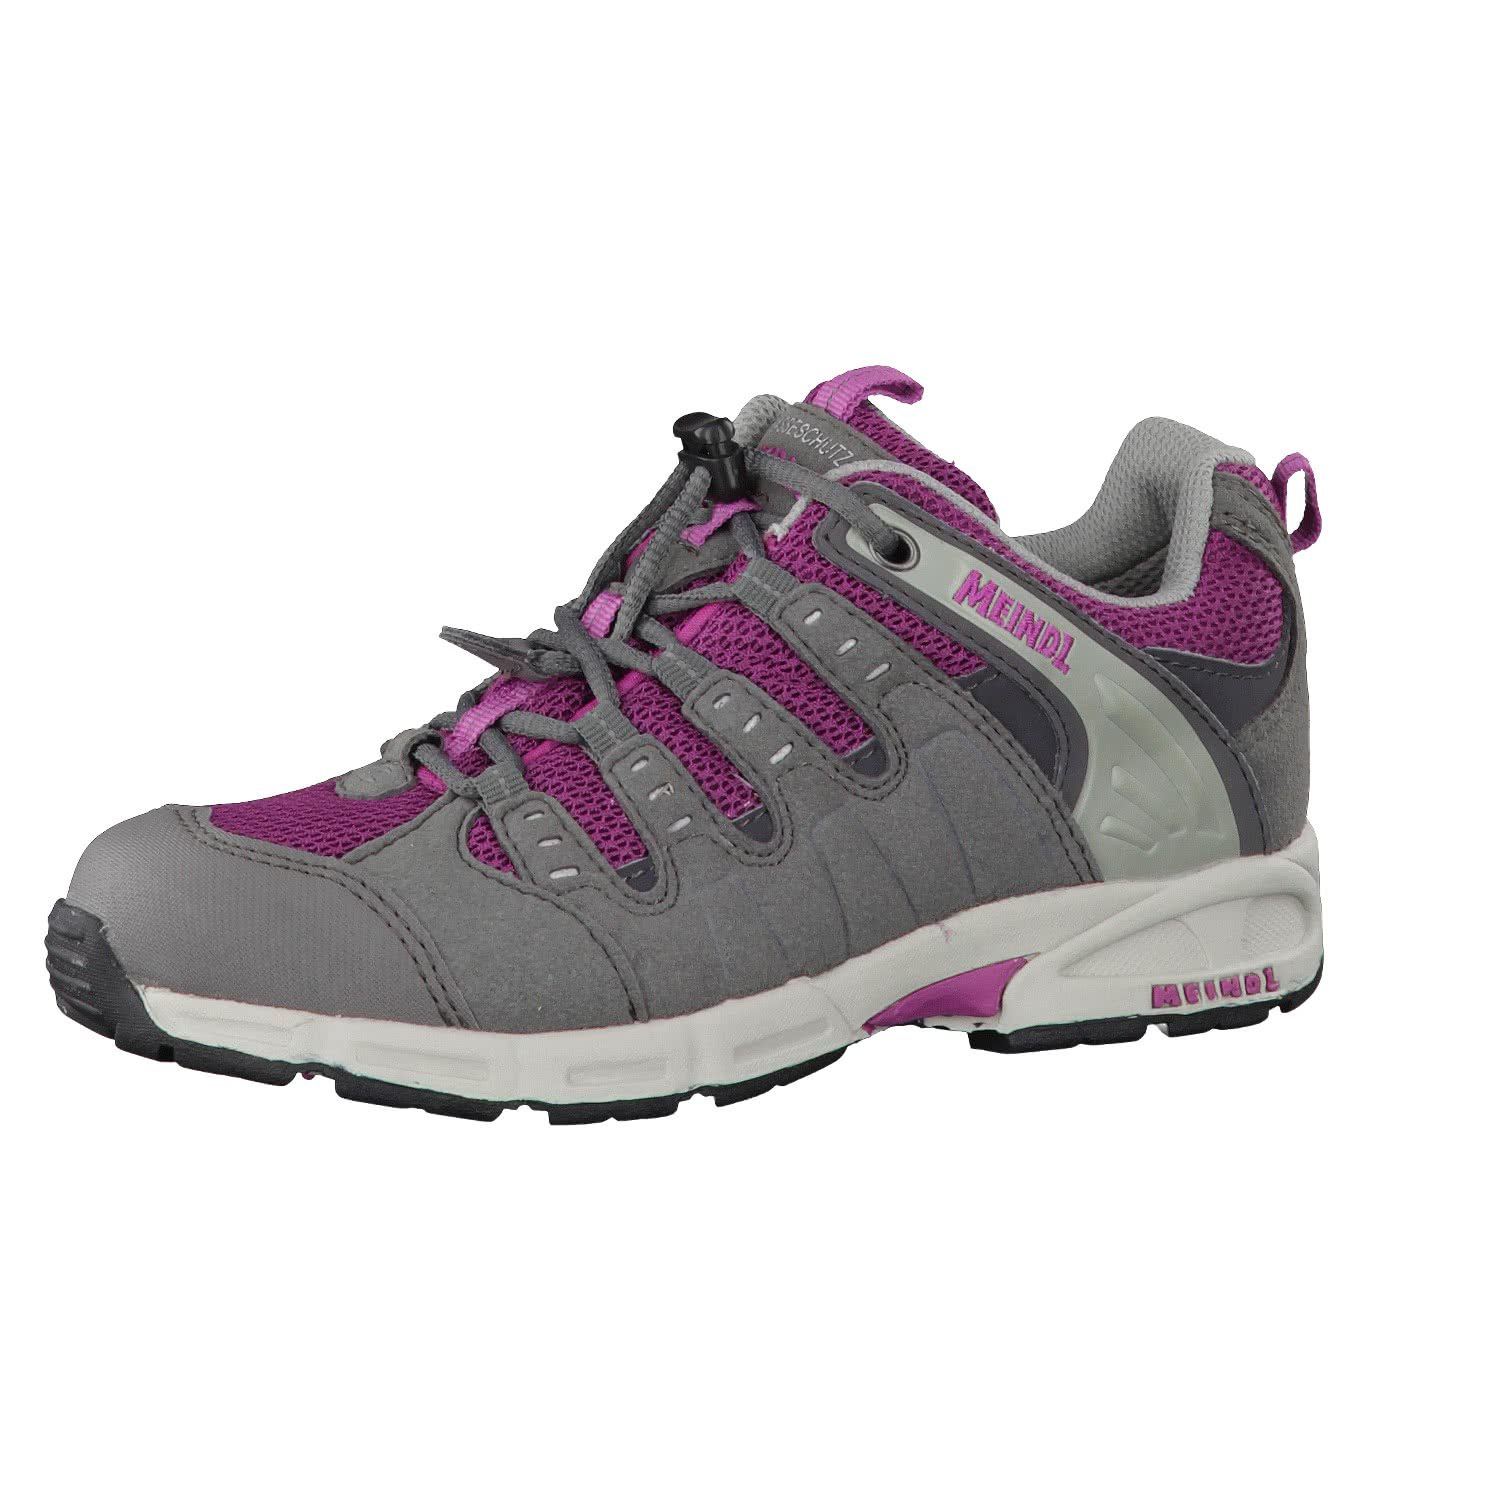 Meindl 2046-49 Snap Junior Kinder Jungen Outdoorschuh aus Velourslederimitat